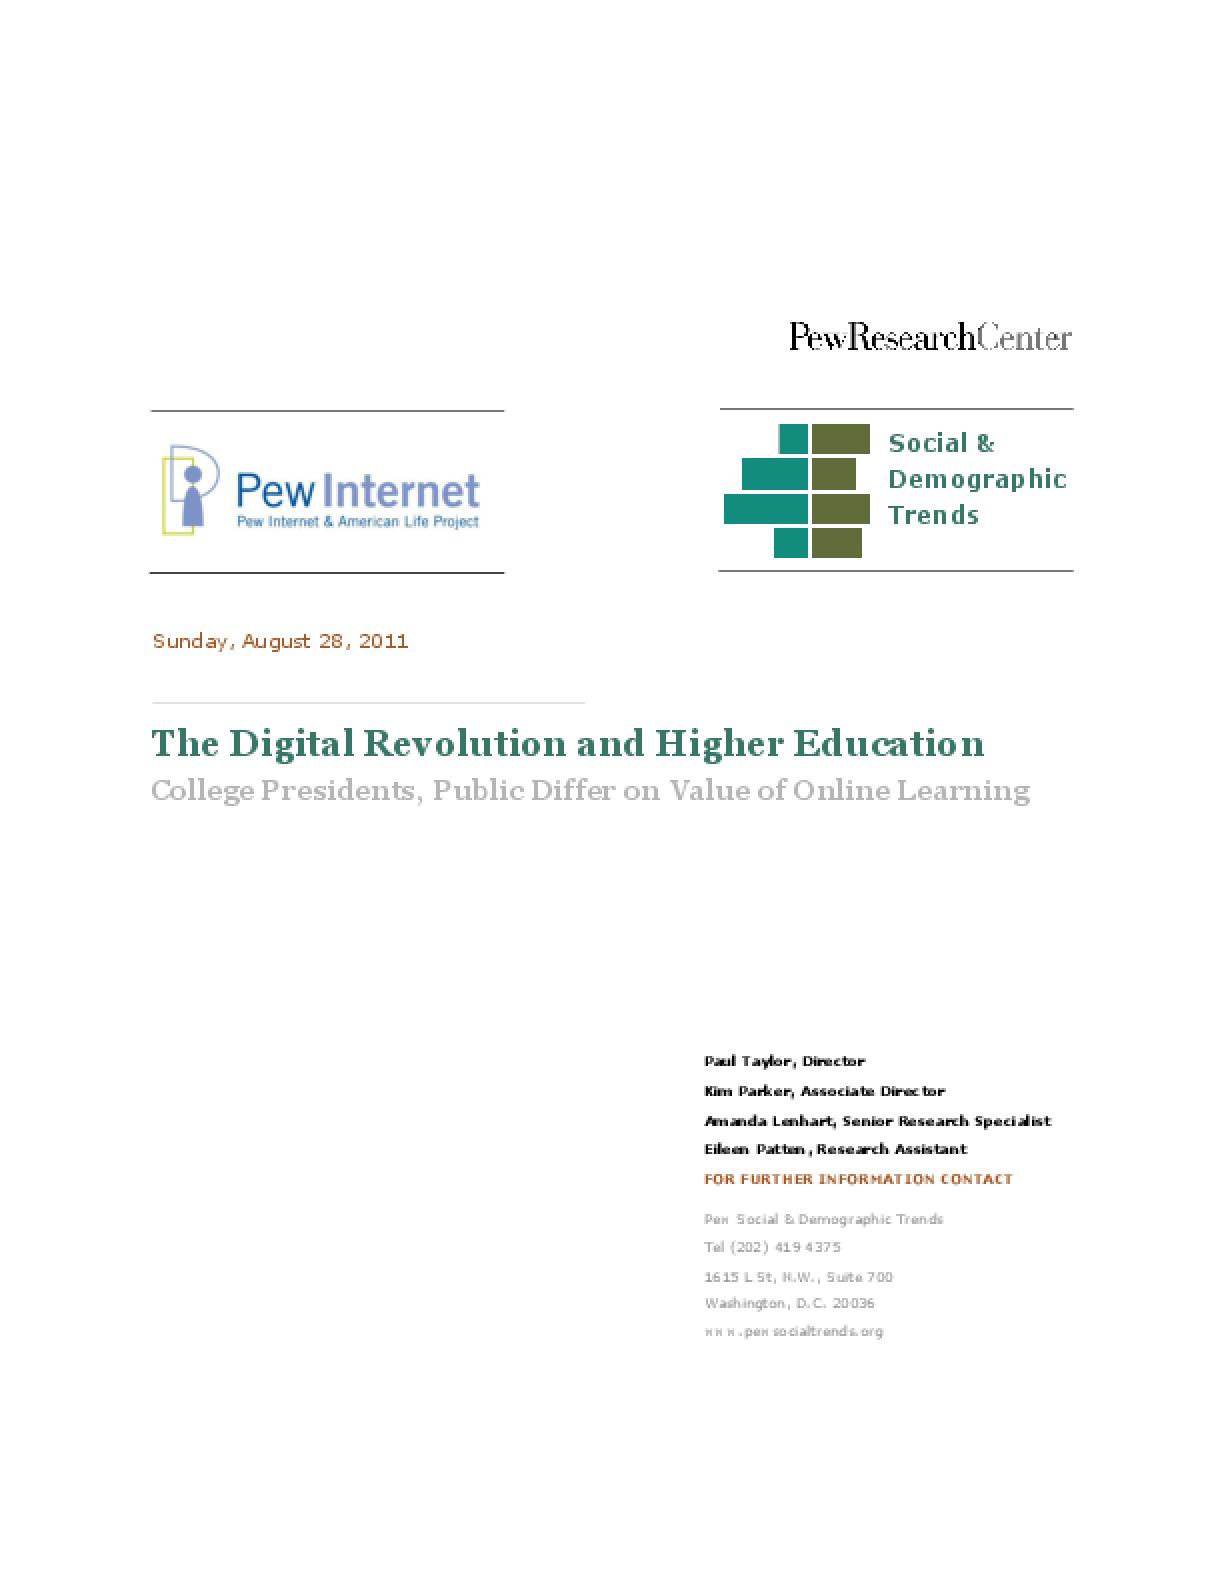 The Digital Revolution and Higher Education